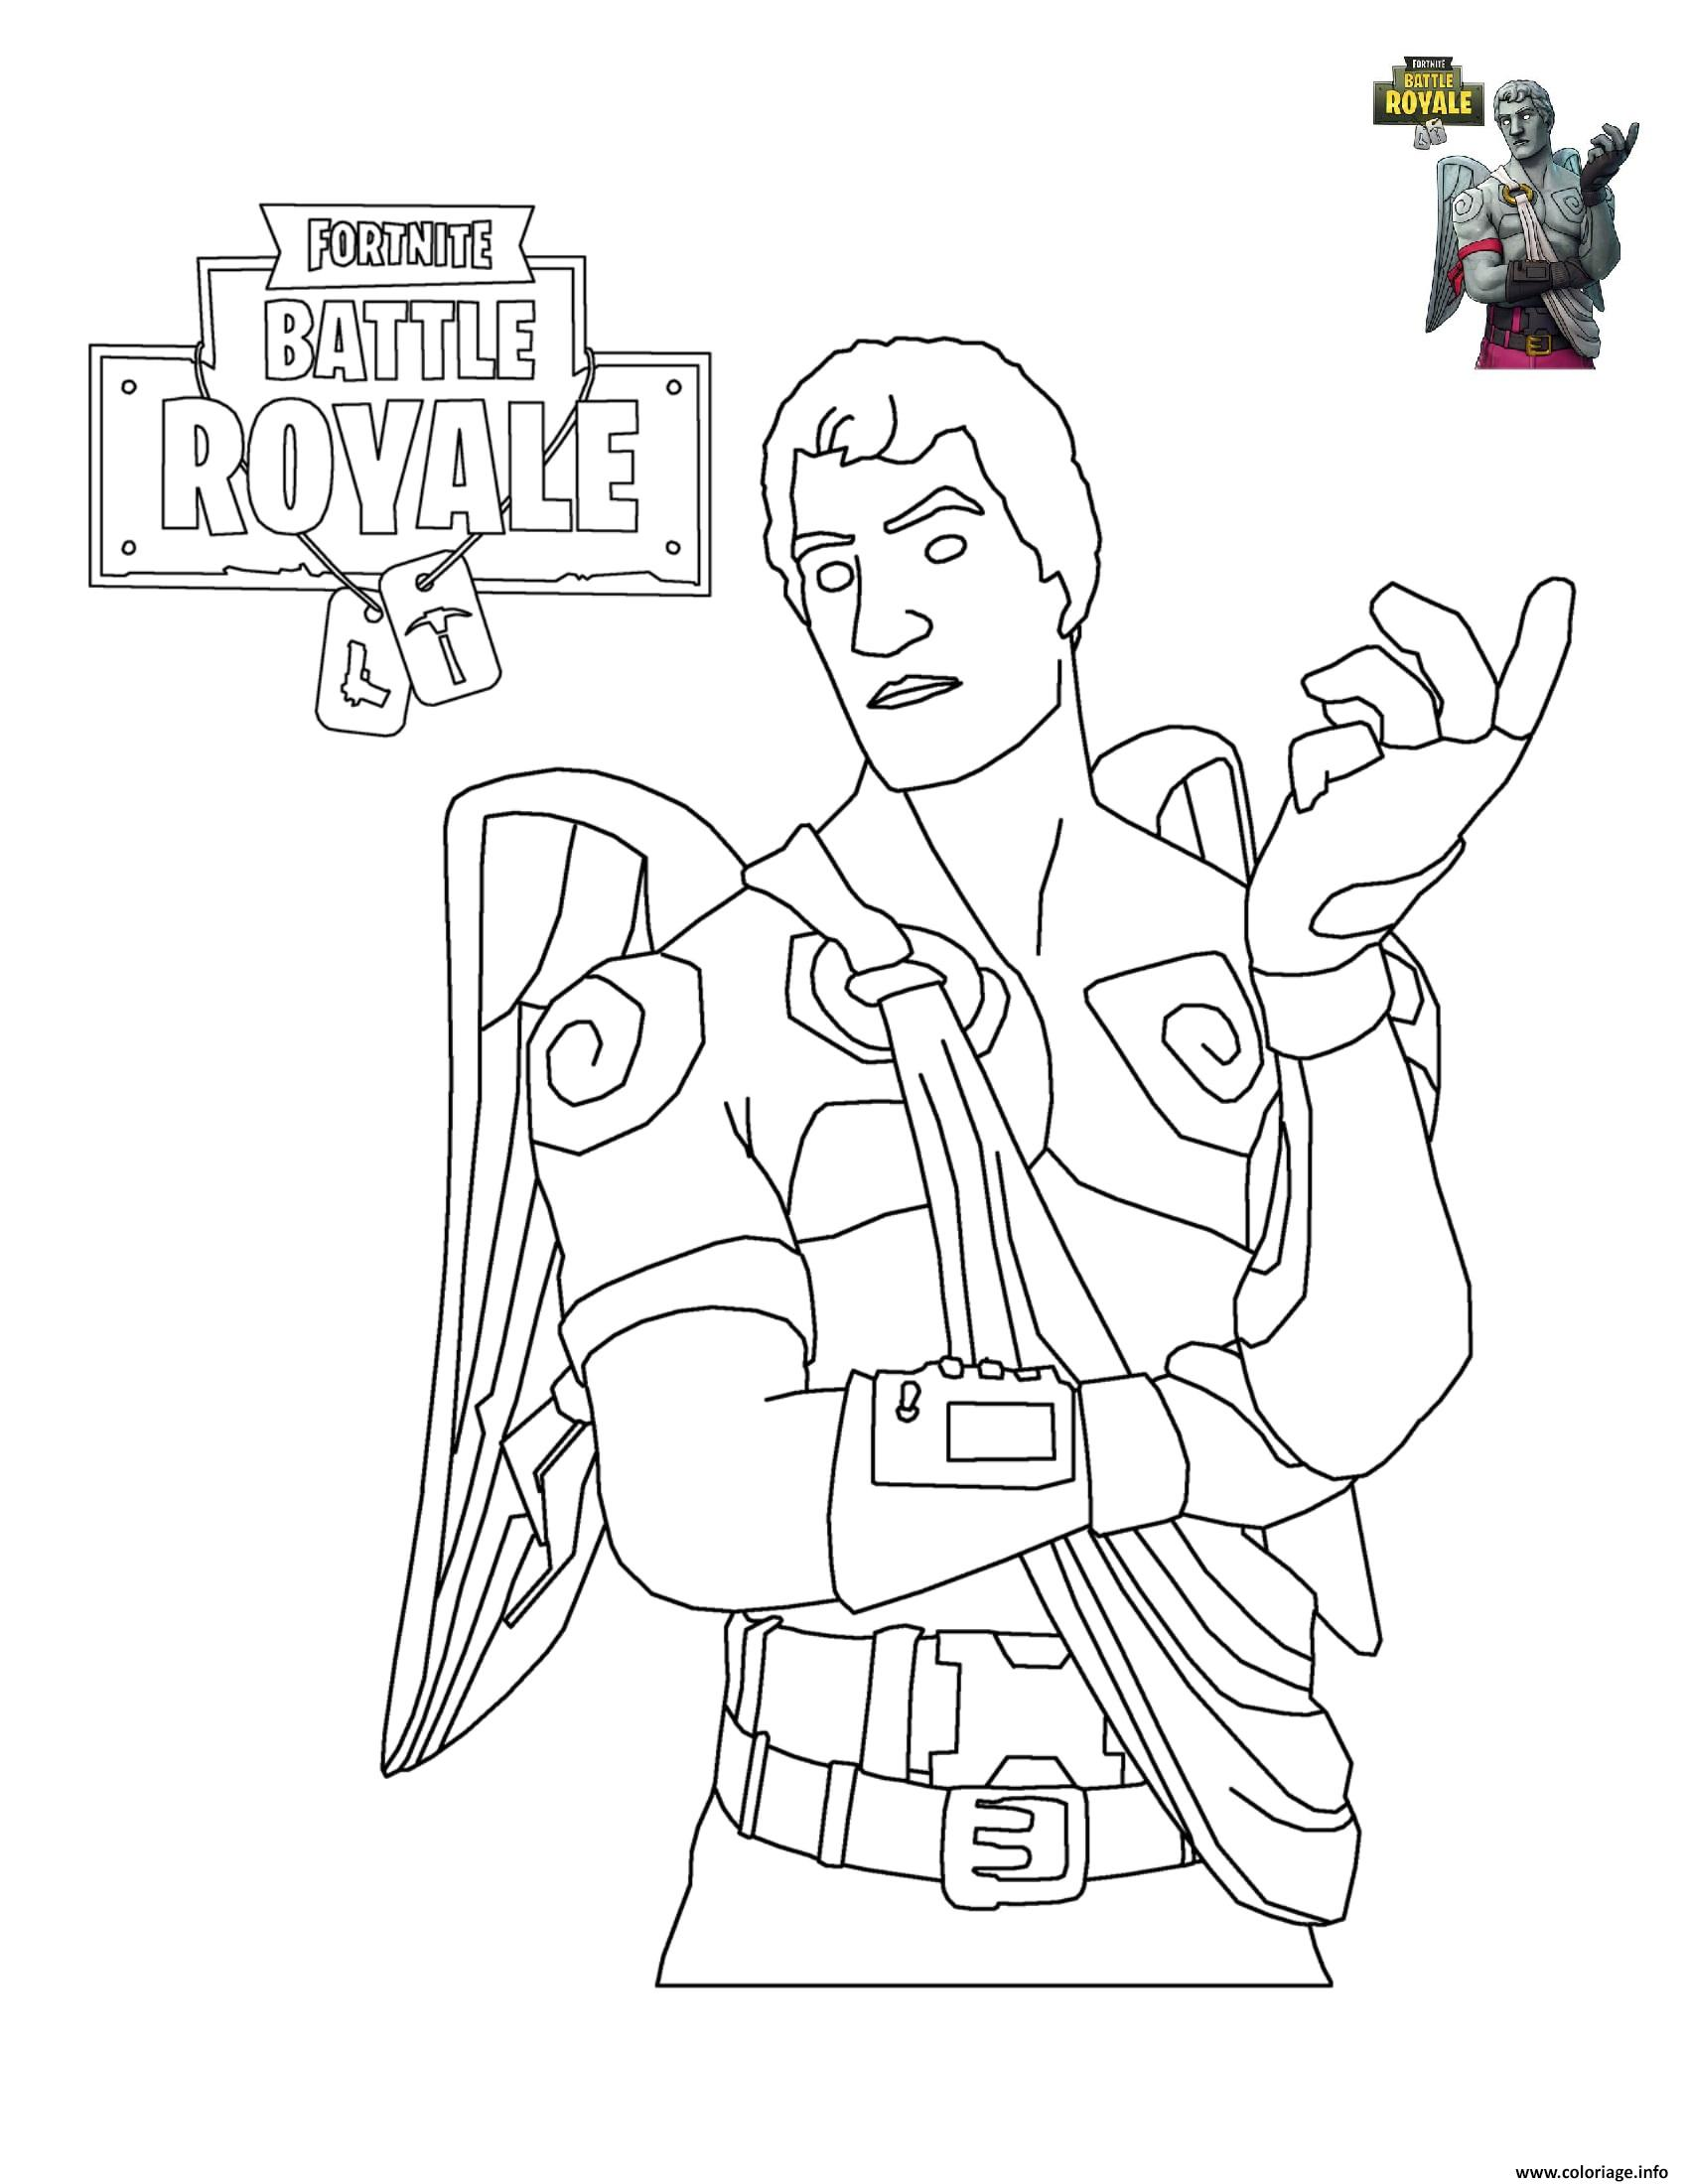 Coloriage Fortnite Battle Royale Personnage 6 Dessin